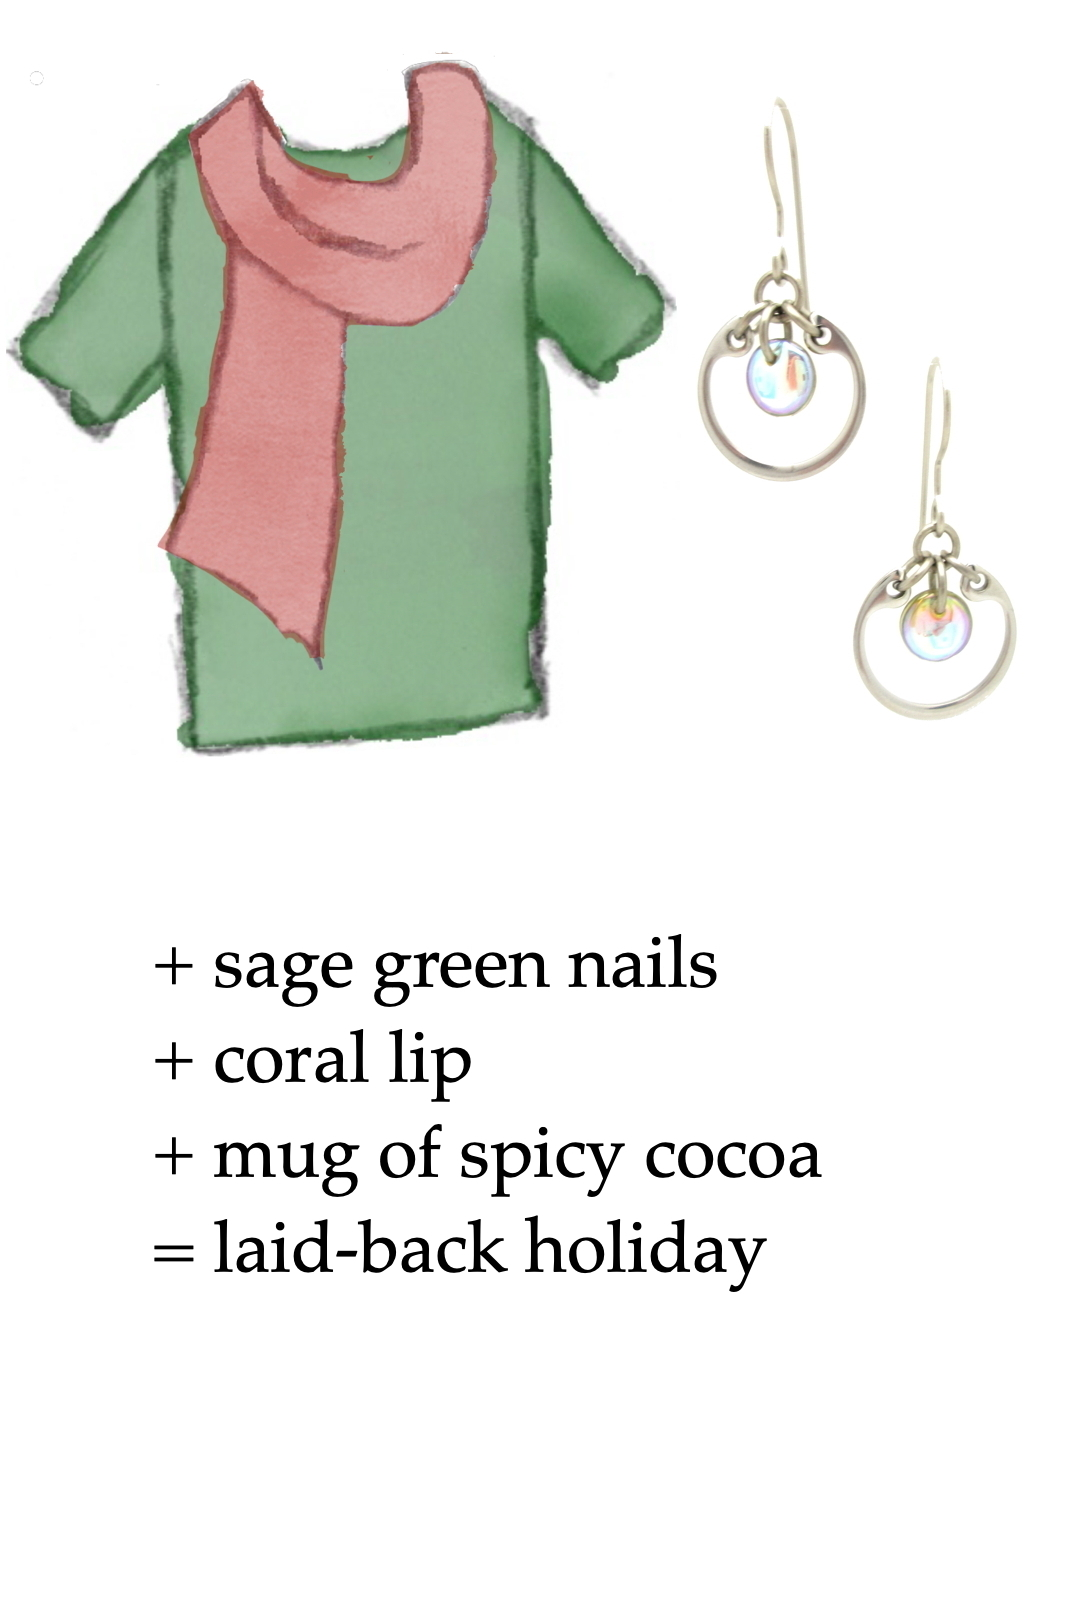 style sketch of a green tee + light red scarf with pale rainbow modern circle earrings by wraptillion; text reads + sage green nails + coral lip + mug of spicy cocoa = laid-back holiday